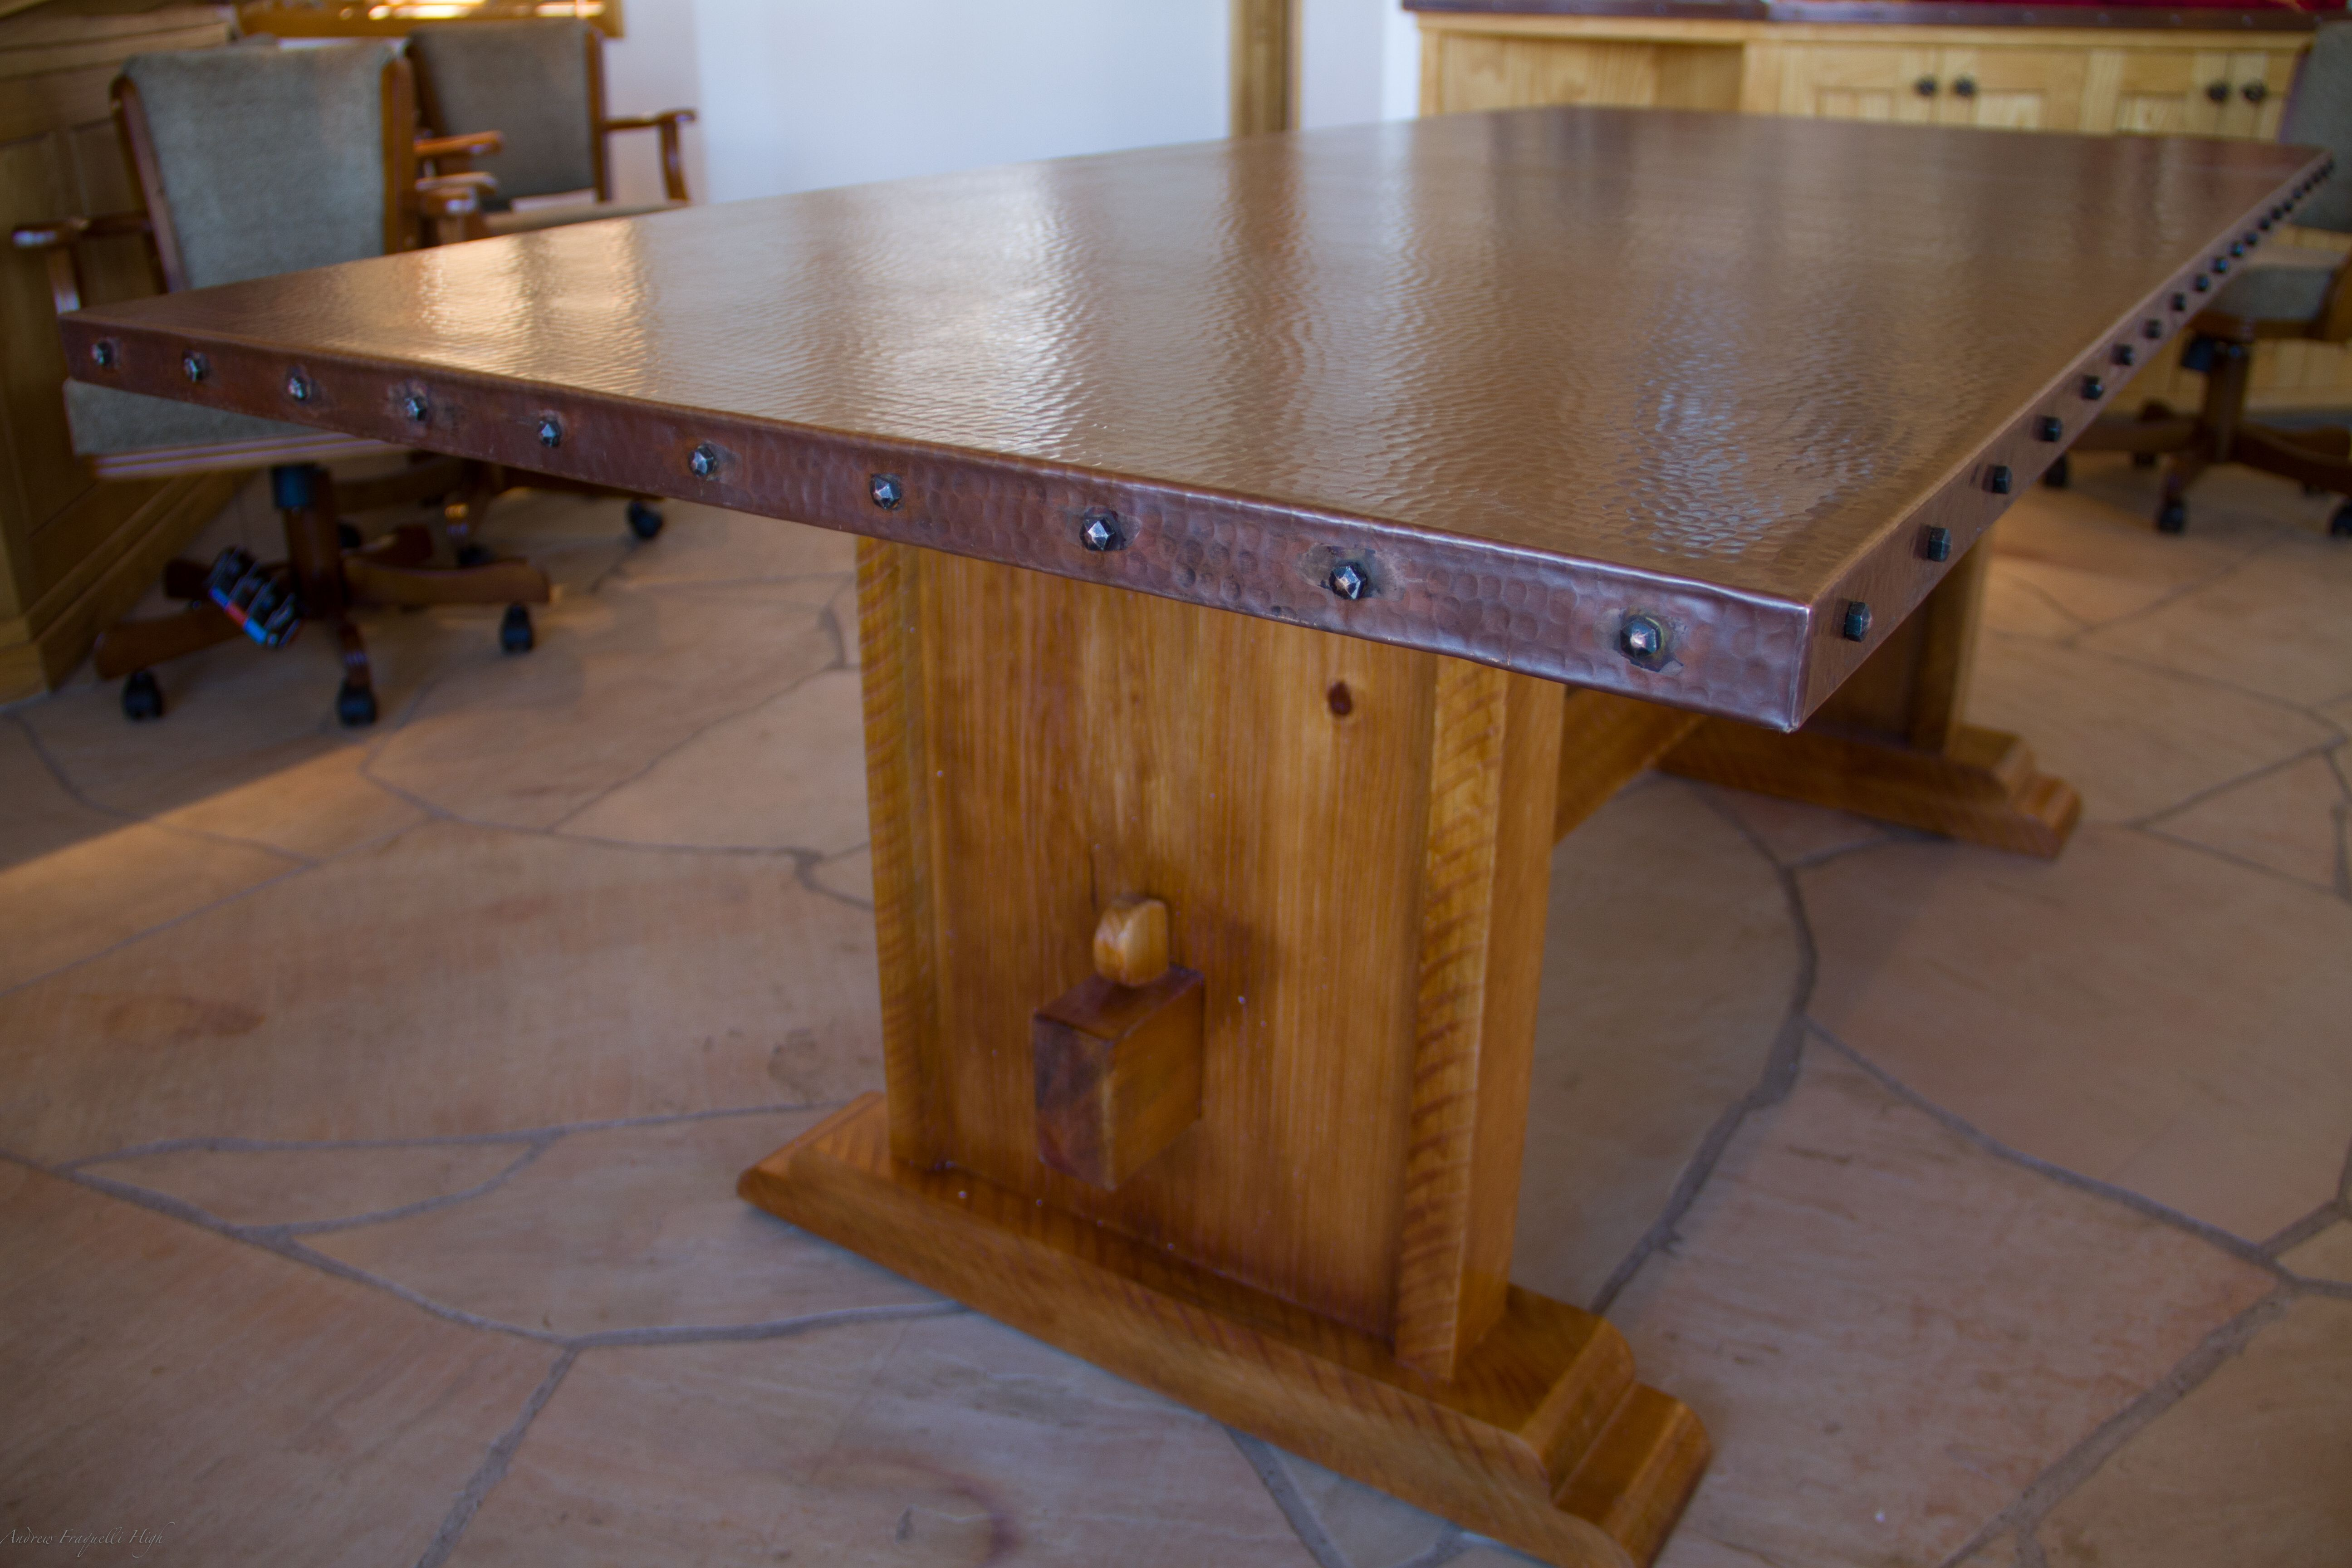 This Copper Top Table Is Tied To A Custom Rough Hewn Wood Base To Create A